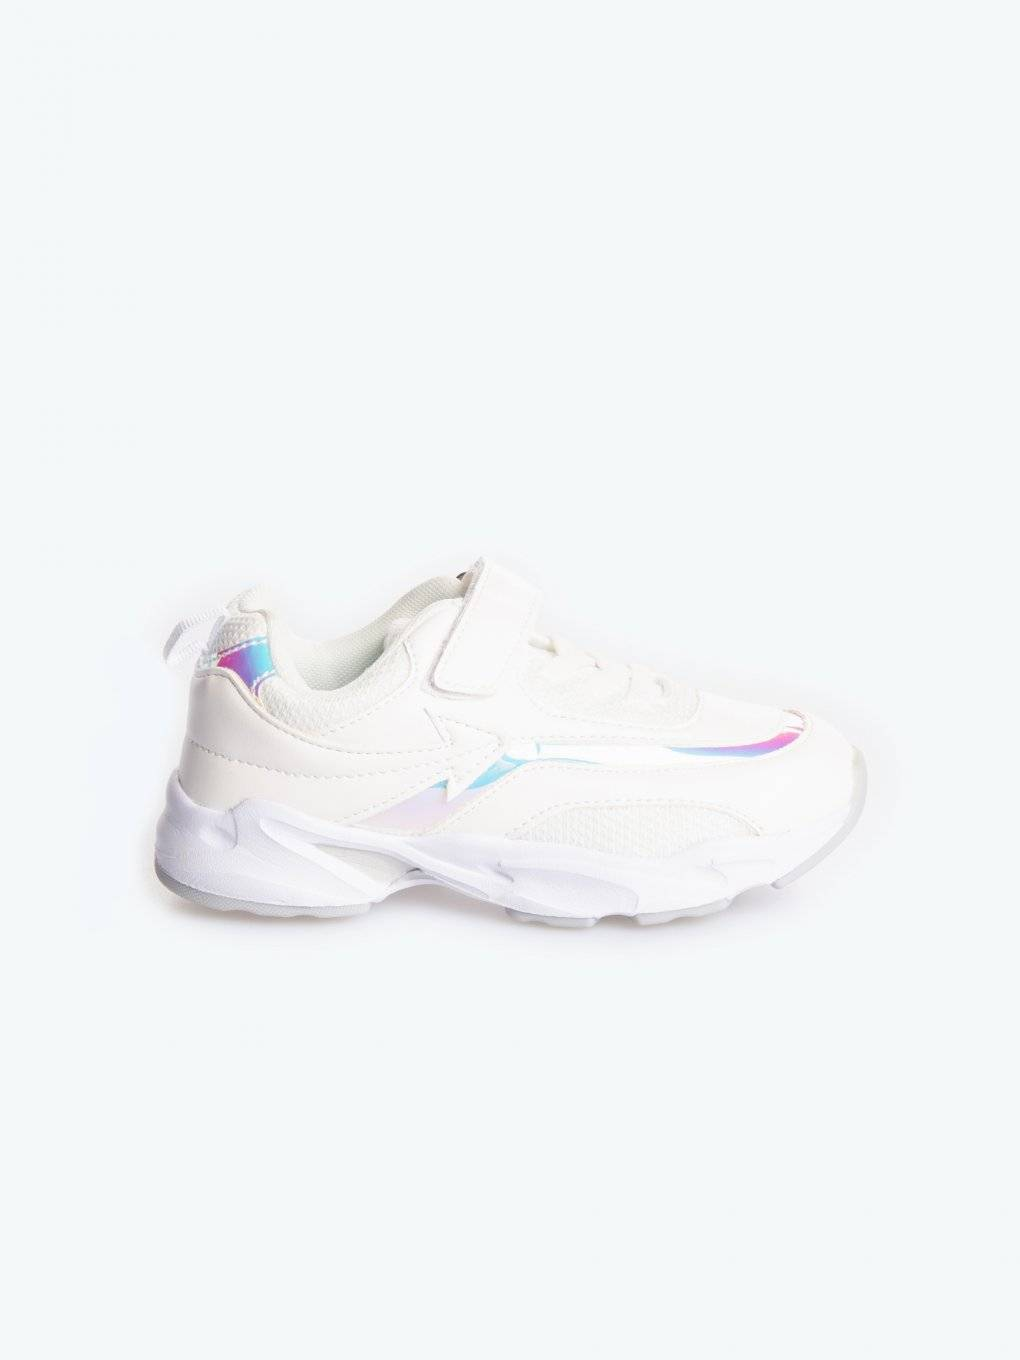 Sneakers with holographic detail